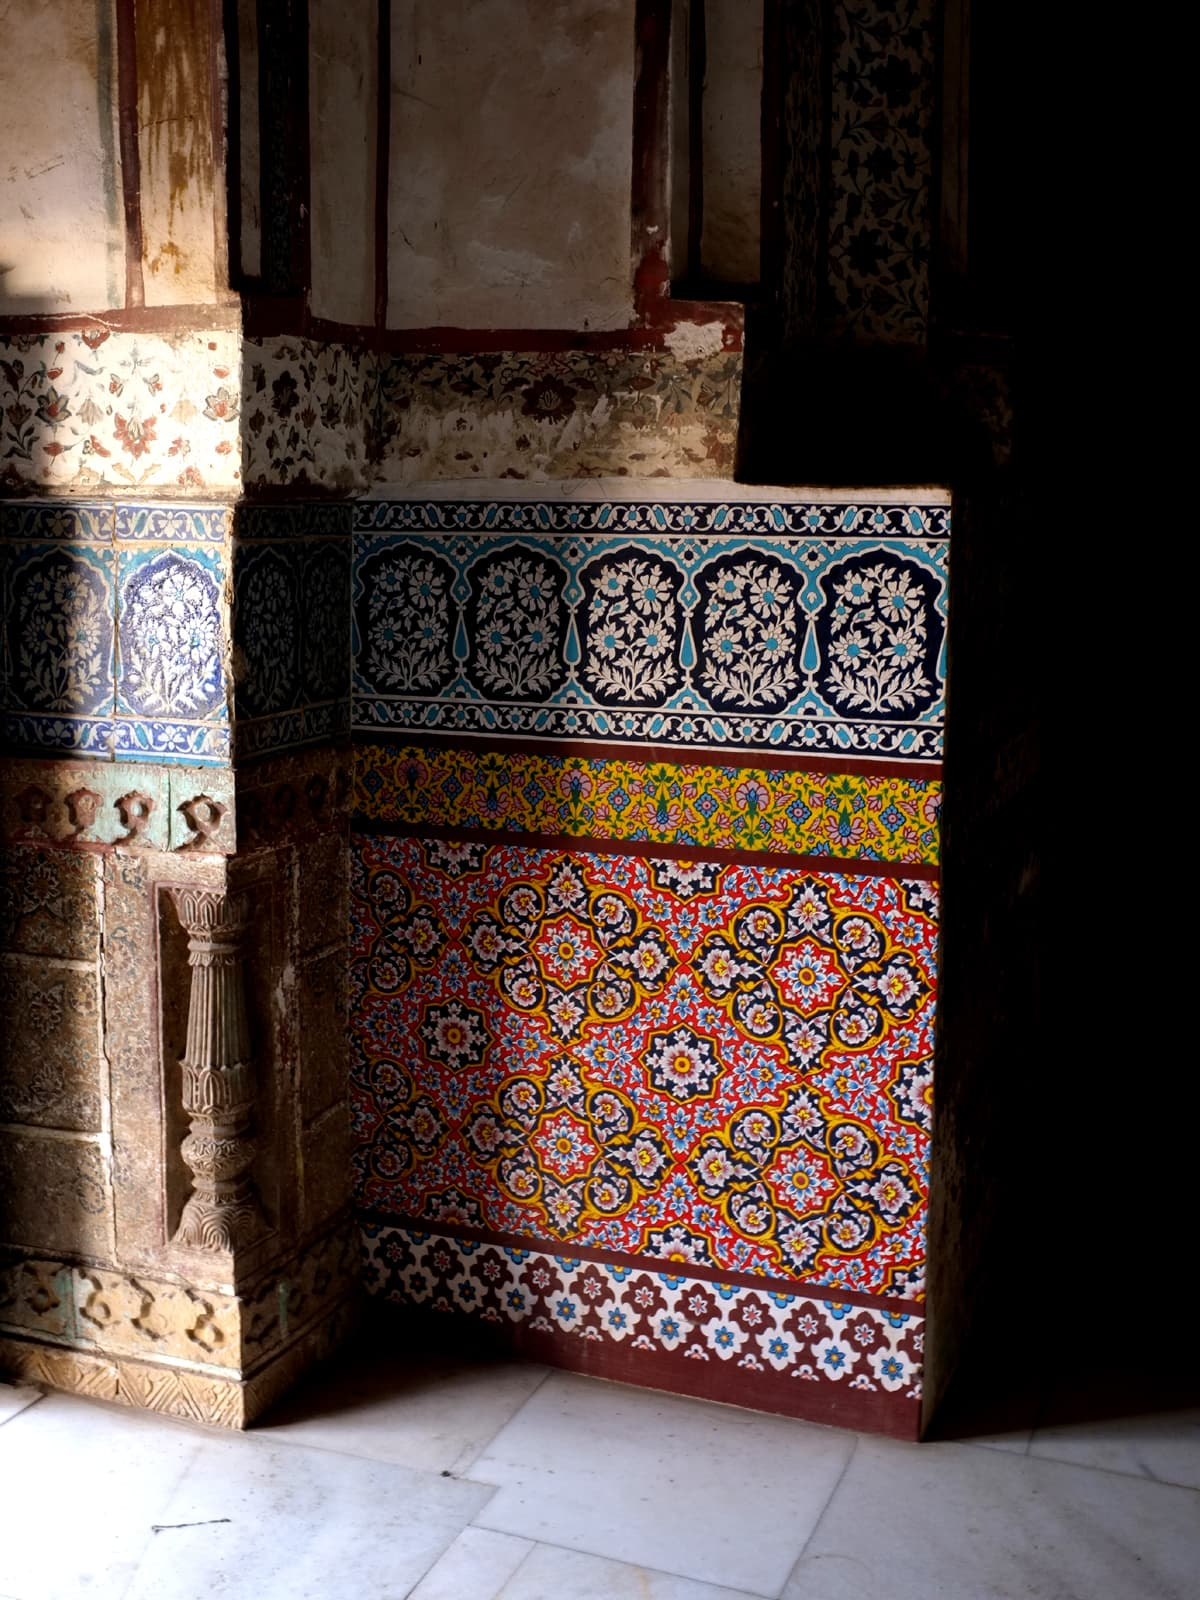 Hidden within the crevices of Pakistan are monuments and landscapes that tell stories rooted in Pakistan's heritage. These are locales that have an untouched beauty about them, at par with the world's most exotic sites. The historic tomb of Talpur Mir in Hyderabad, with its artisanal carved walls, turquoise tile work and stately architecture is seen here, featured alongside Rizwan Beyg's 'Pearlessence', a collection that has a regal elegance of its own, doing great justice to its stately backdrop.